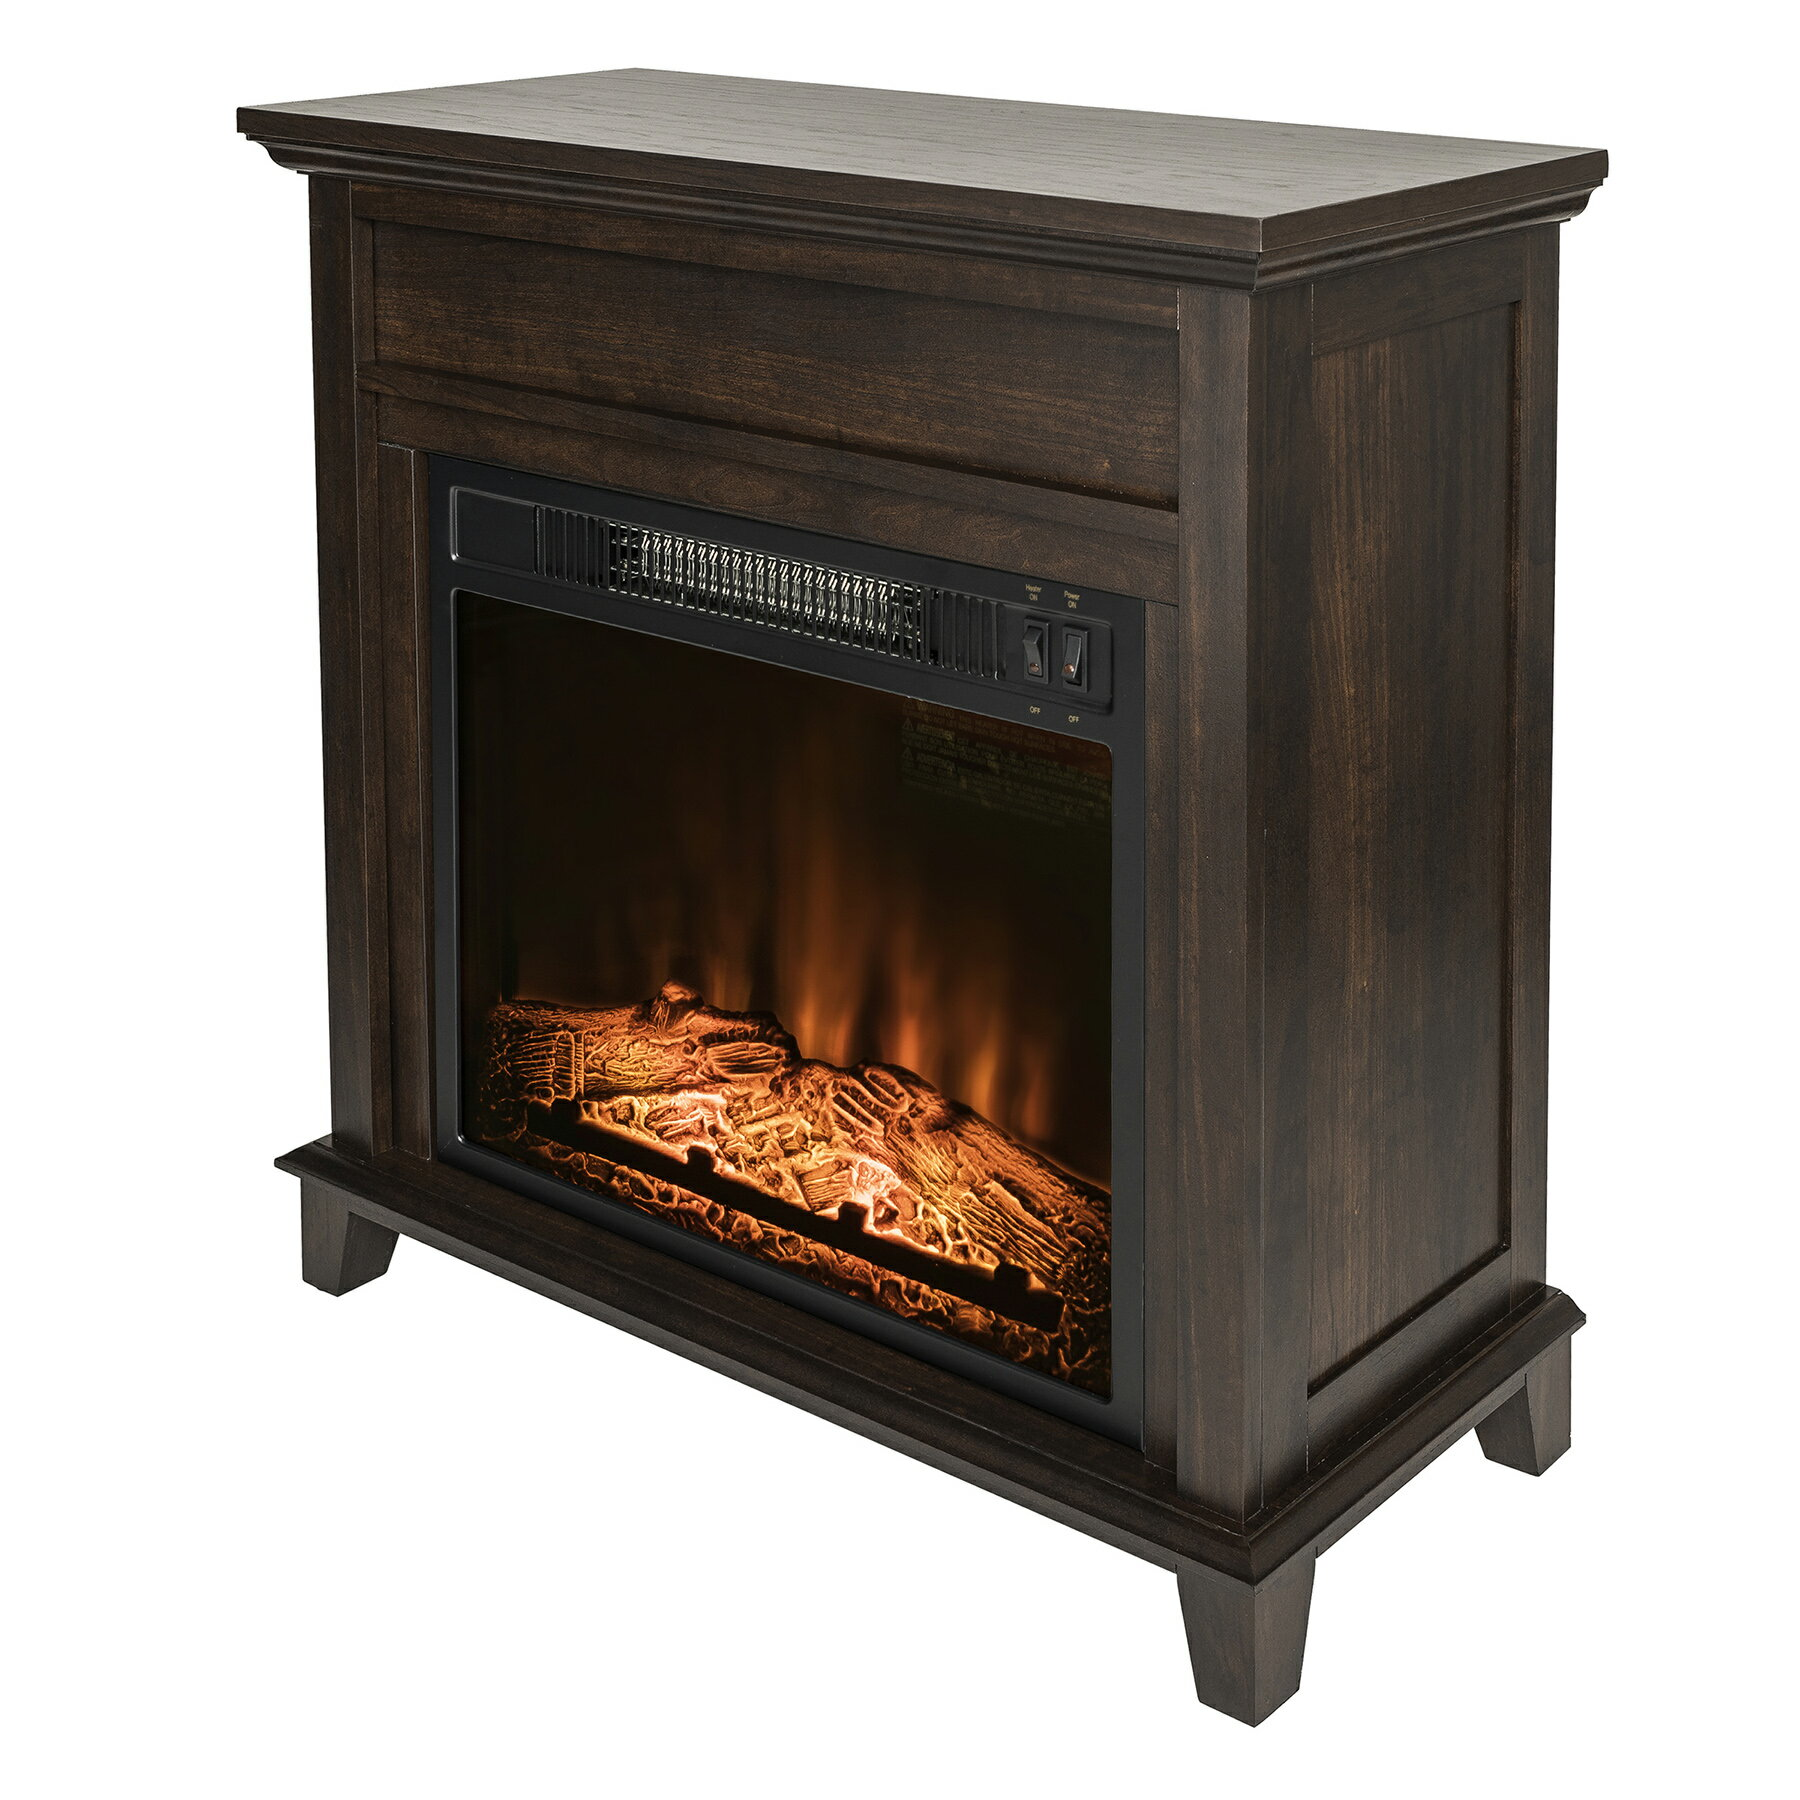 "AKDY 27"" Freestanding Wooden Mantel Electric Fireplace Stove Heater 2"